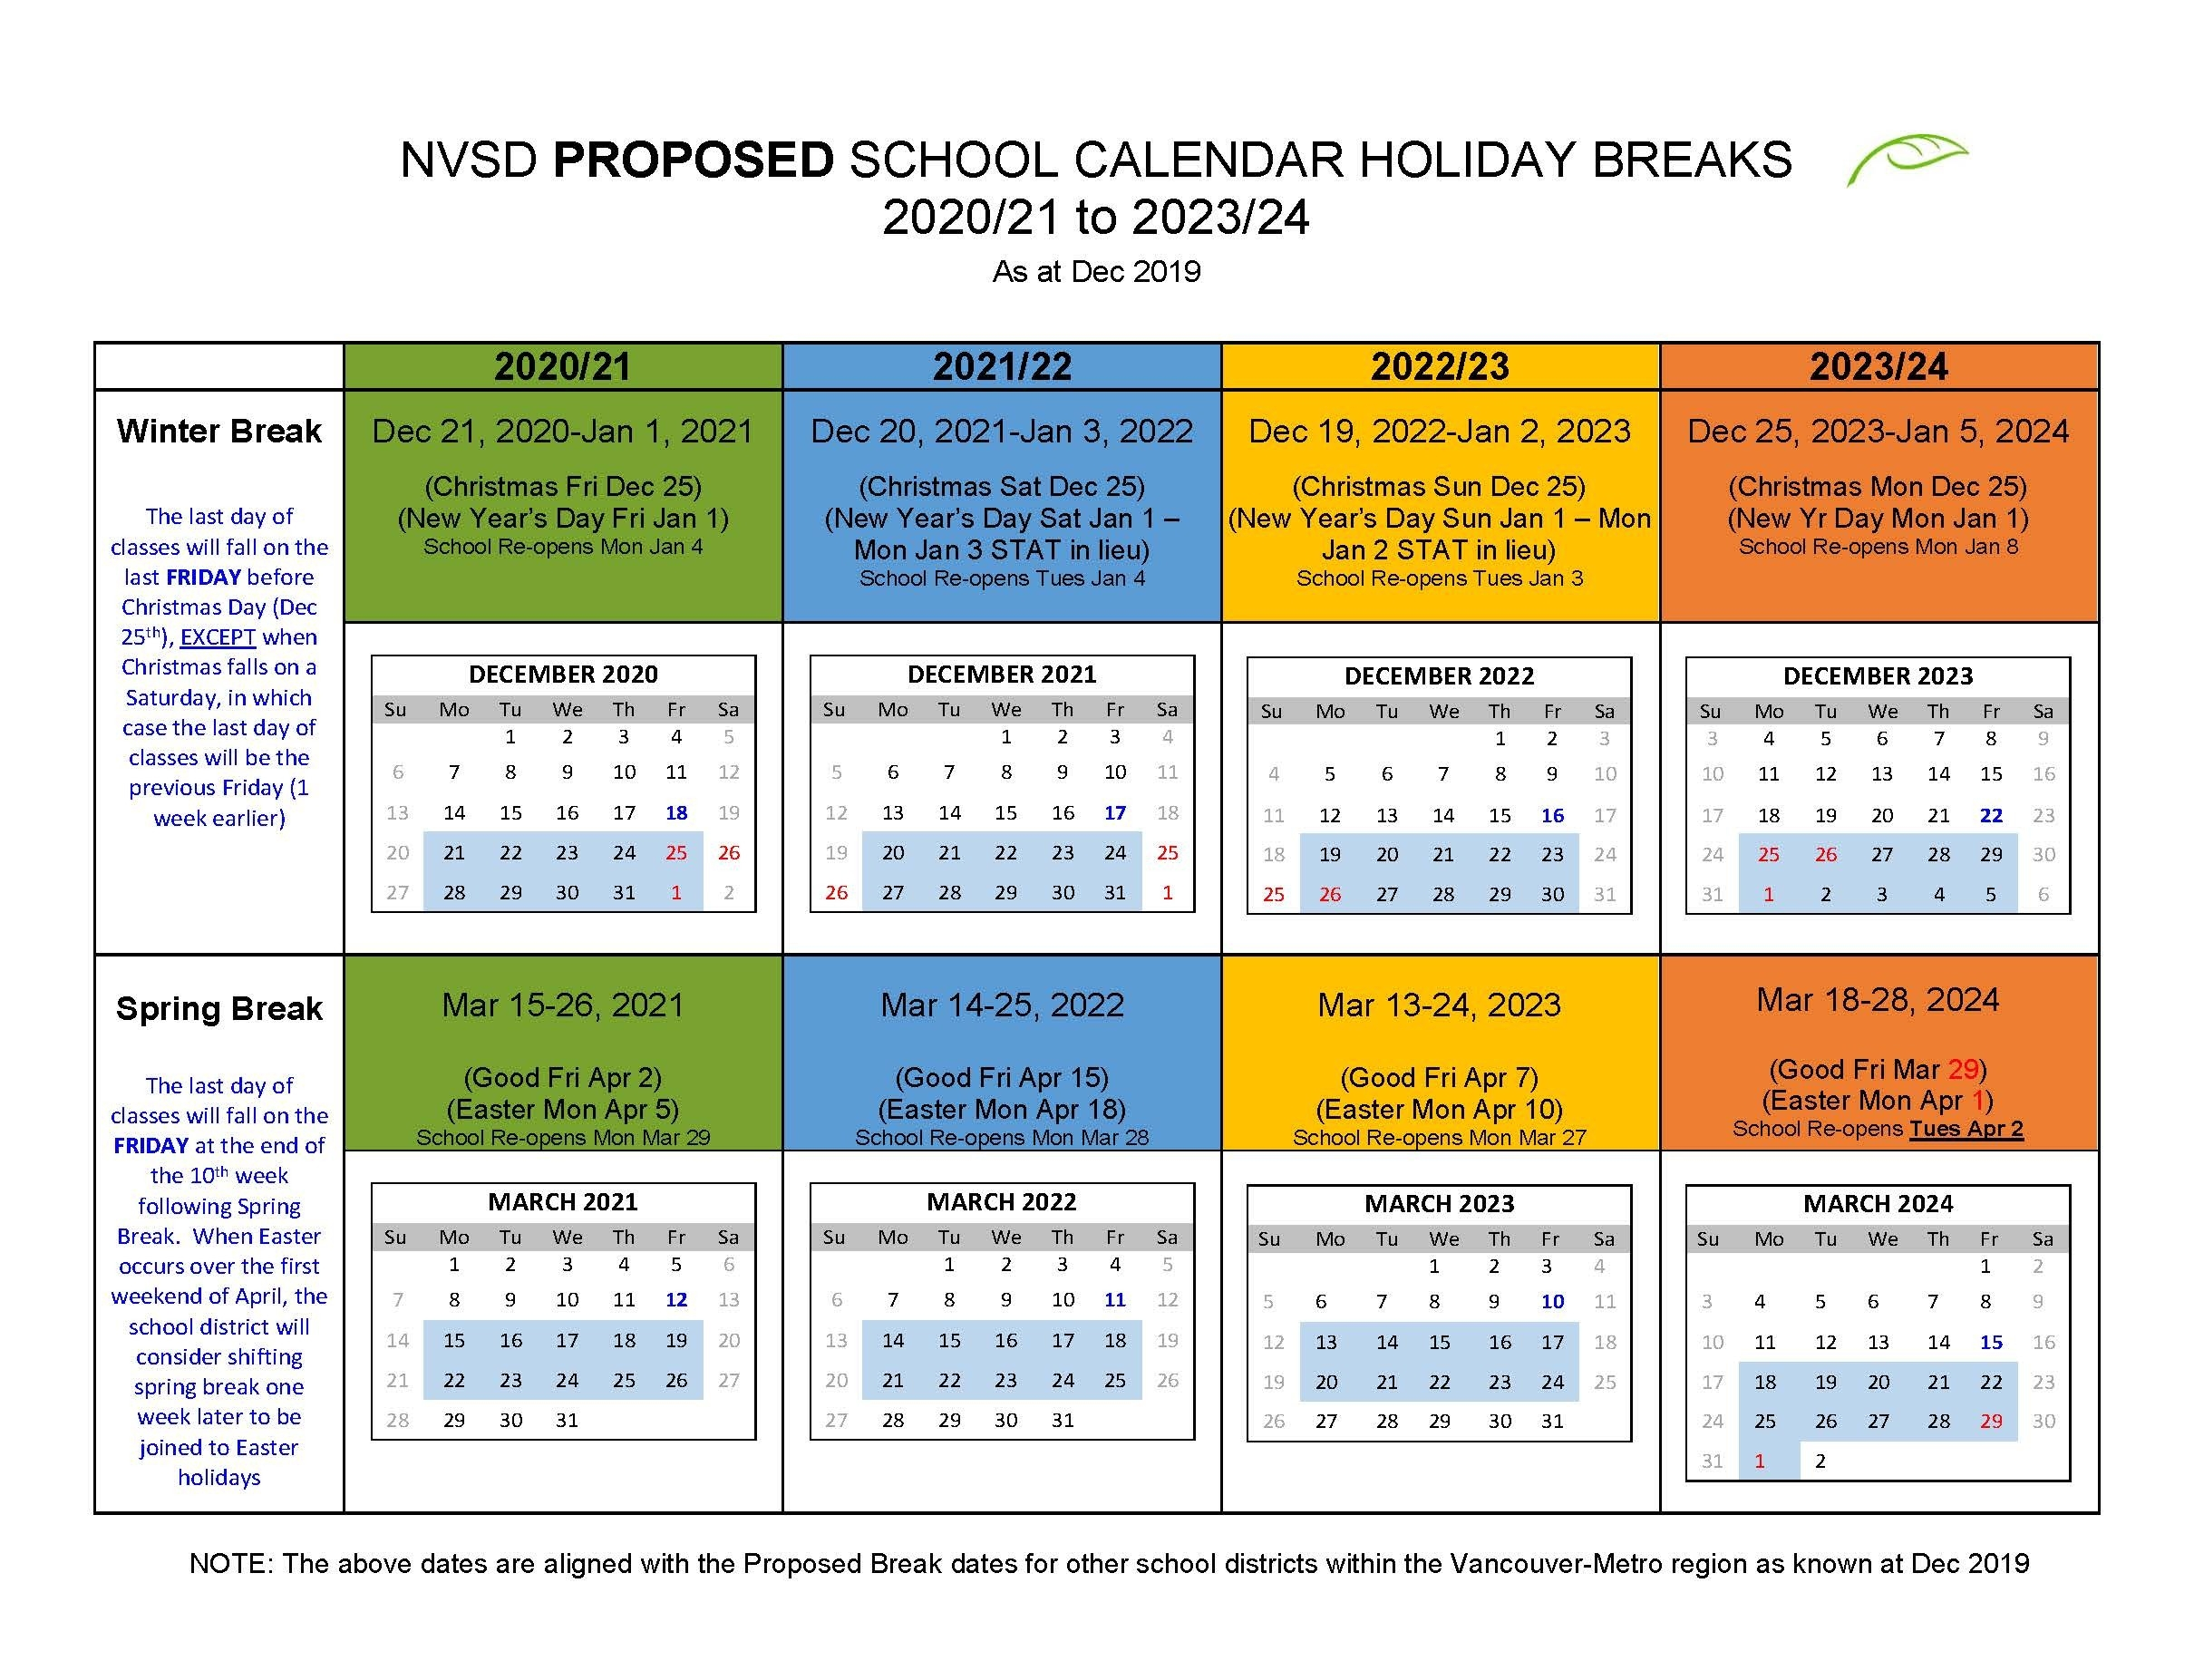 District Calendar - North Vancouver School District-Hp Polytechnic Holidays Schdeule 2020